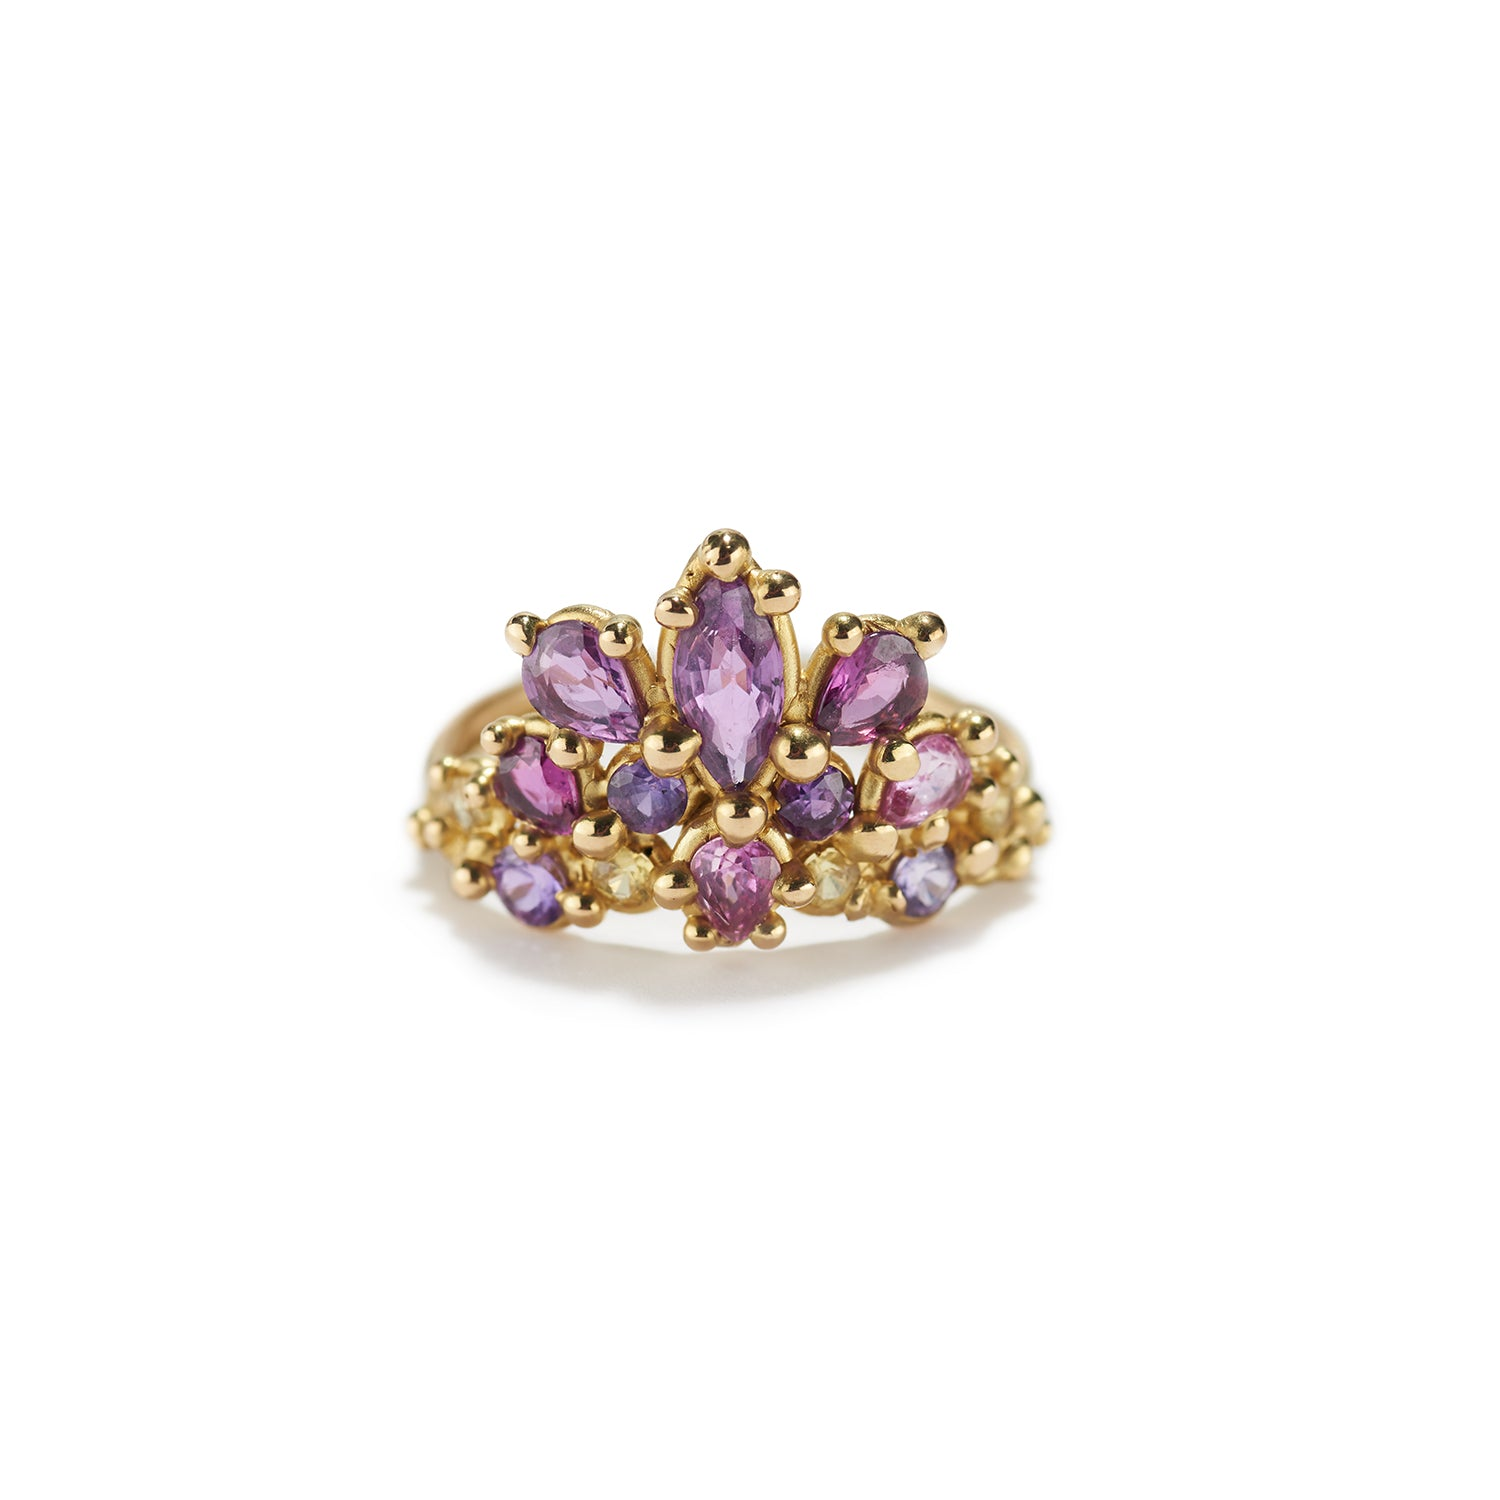 Tiara Ring with Purple & Yellow Sapphire